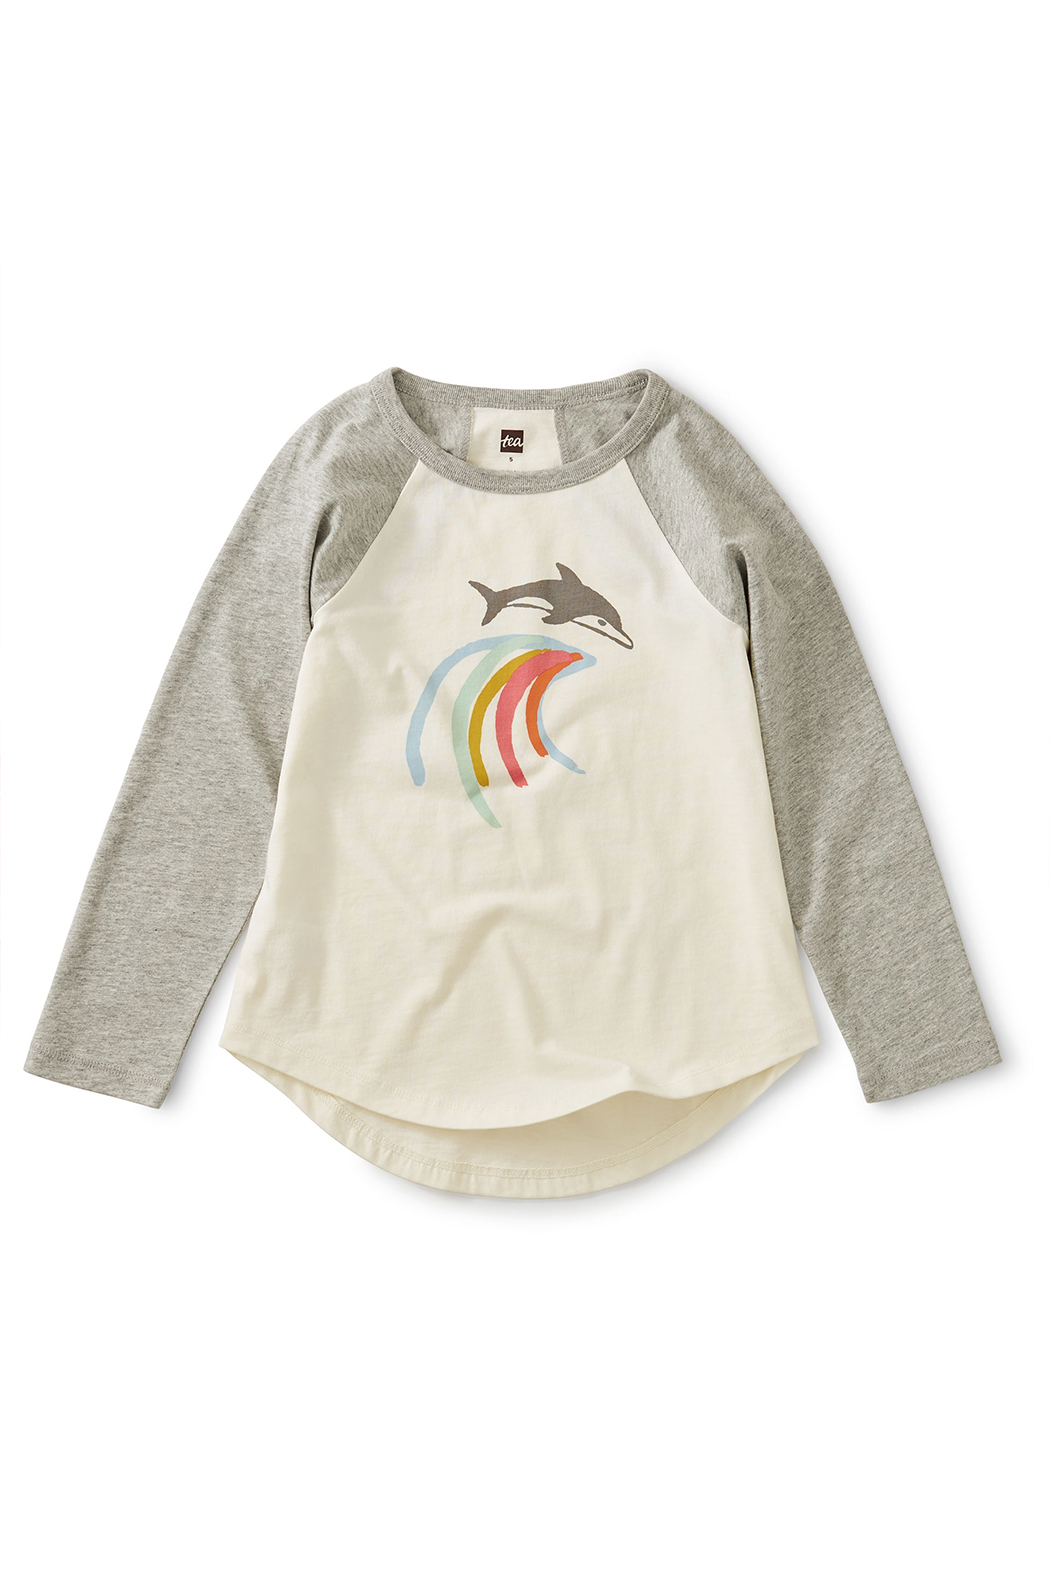 Tea Collection Mediterranean Dolphin Raglan Tee - Main Image